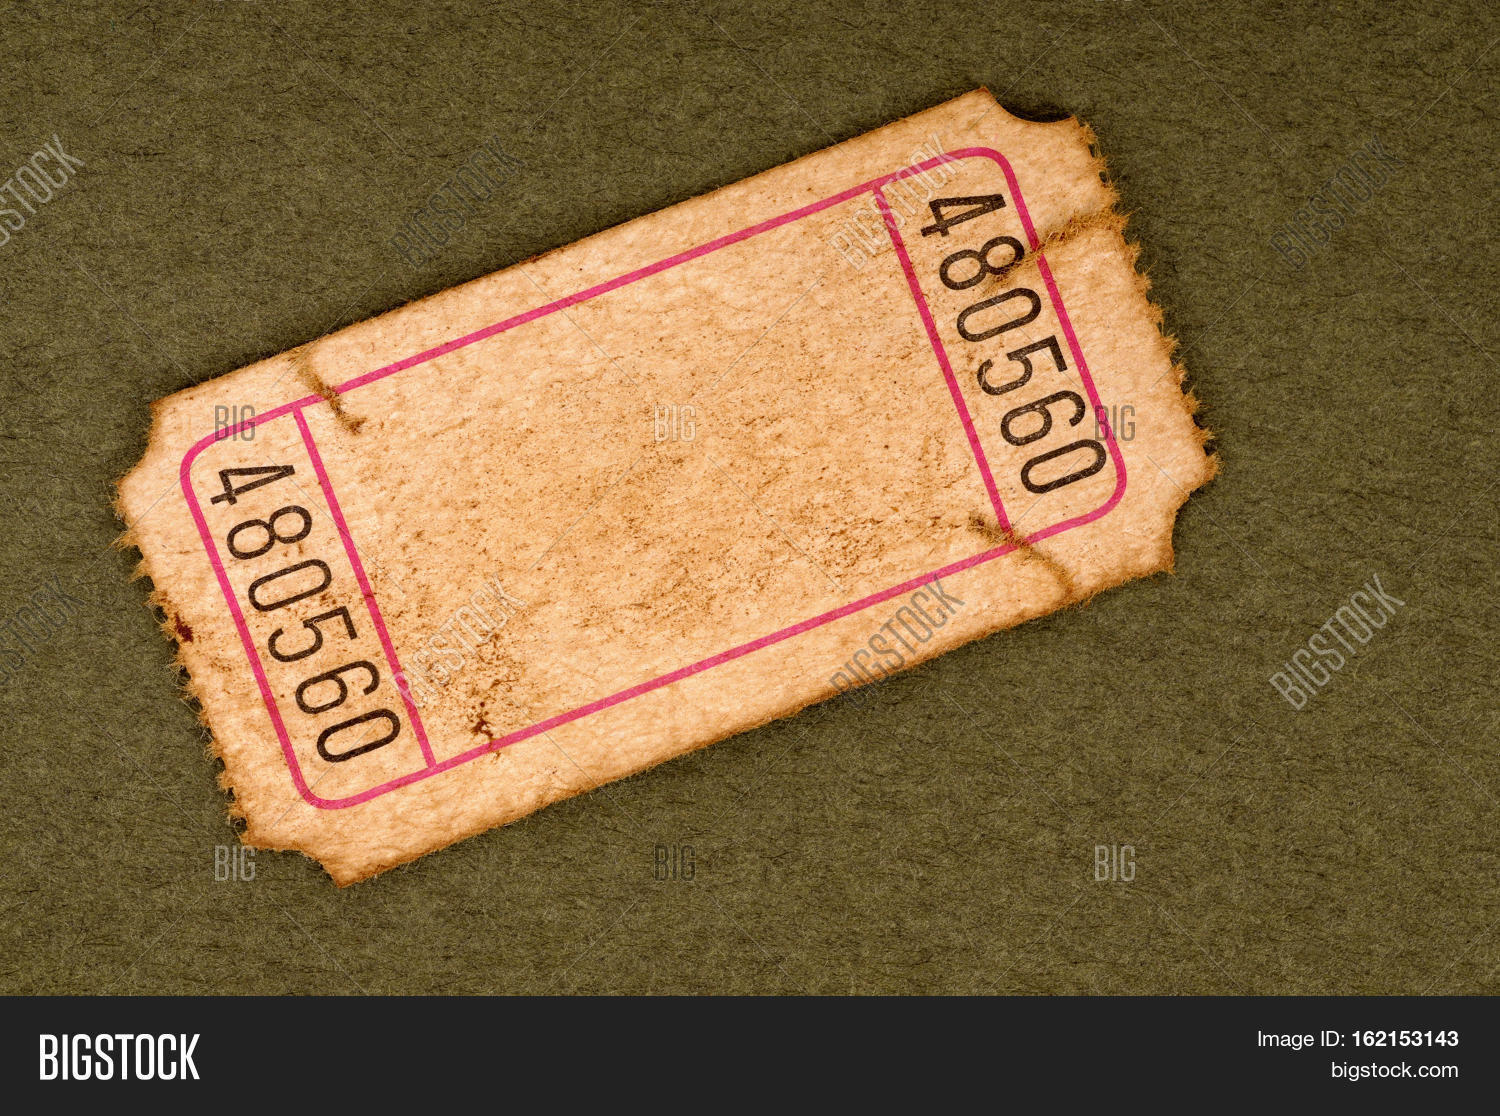 old blank ticket stub image photo free trial bigstock